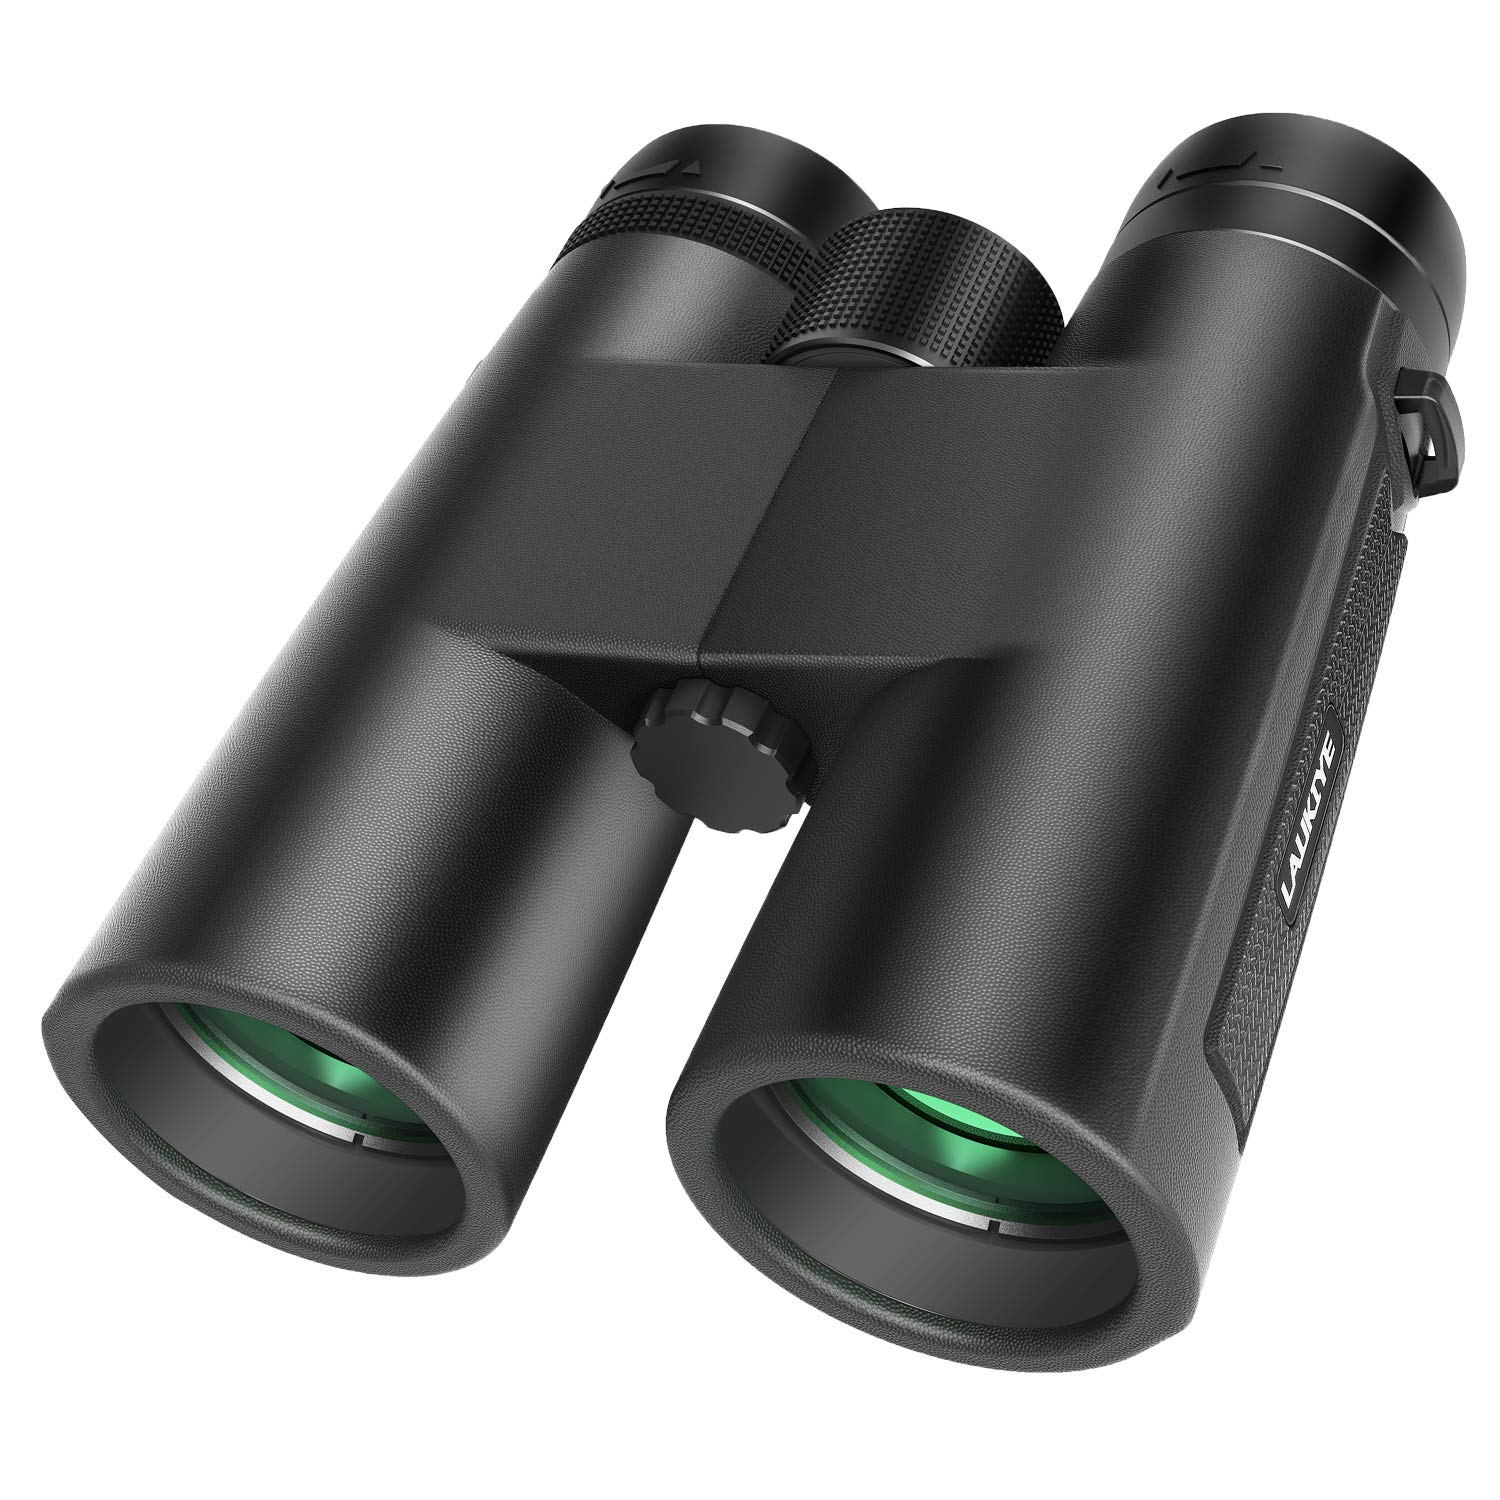 12X42 Binoculars for Adults, HD Professional Binoculars for Bird Watching, Compact Binoculars for Hunting, 18mm Large Eyepiece Binoculars for Outdoor Sports with Super Bright BAK4 FMC Lens